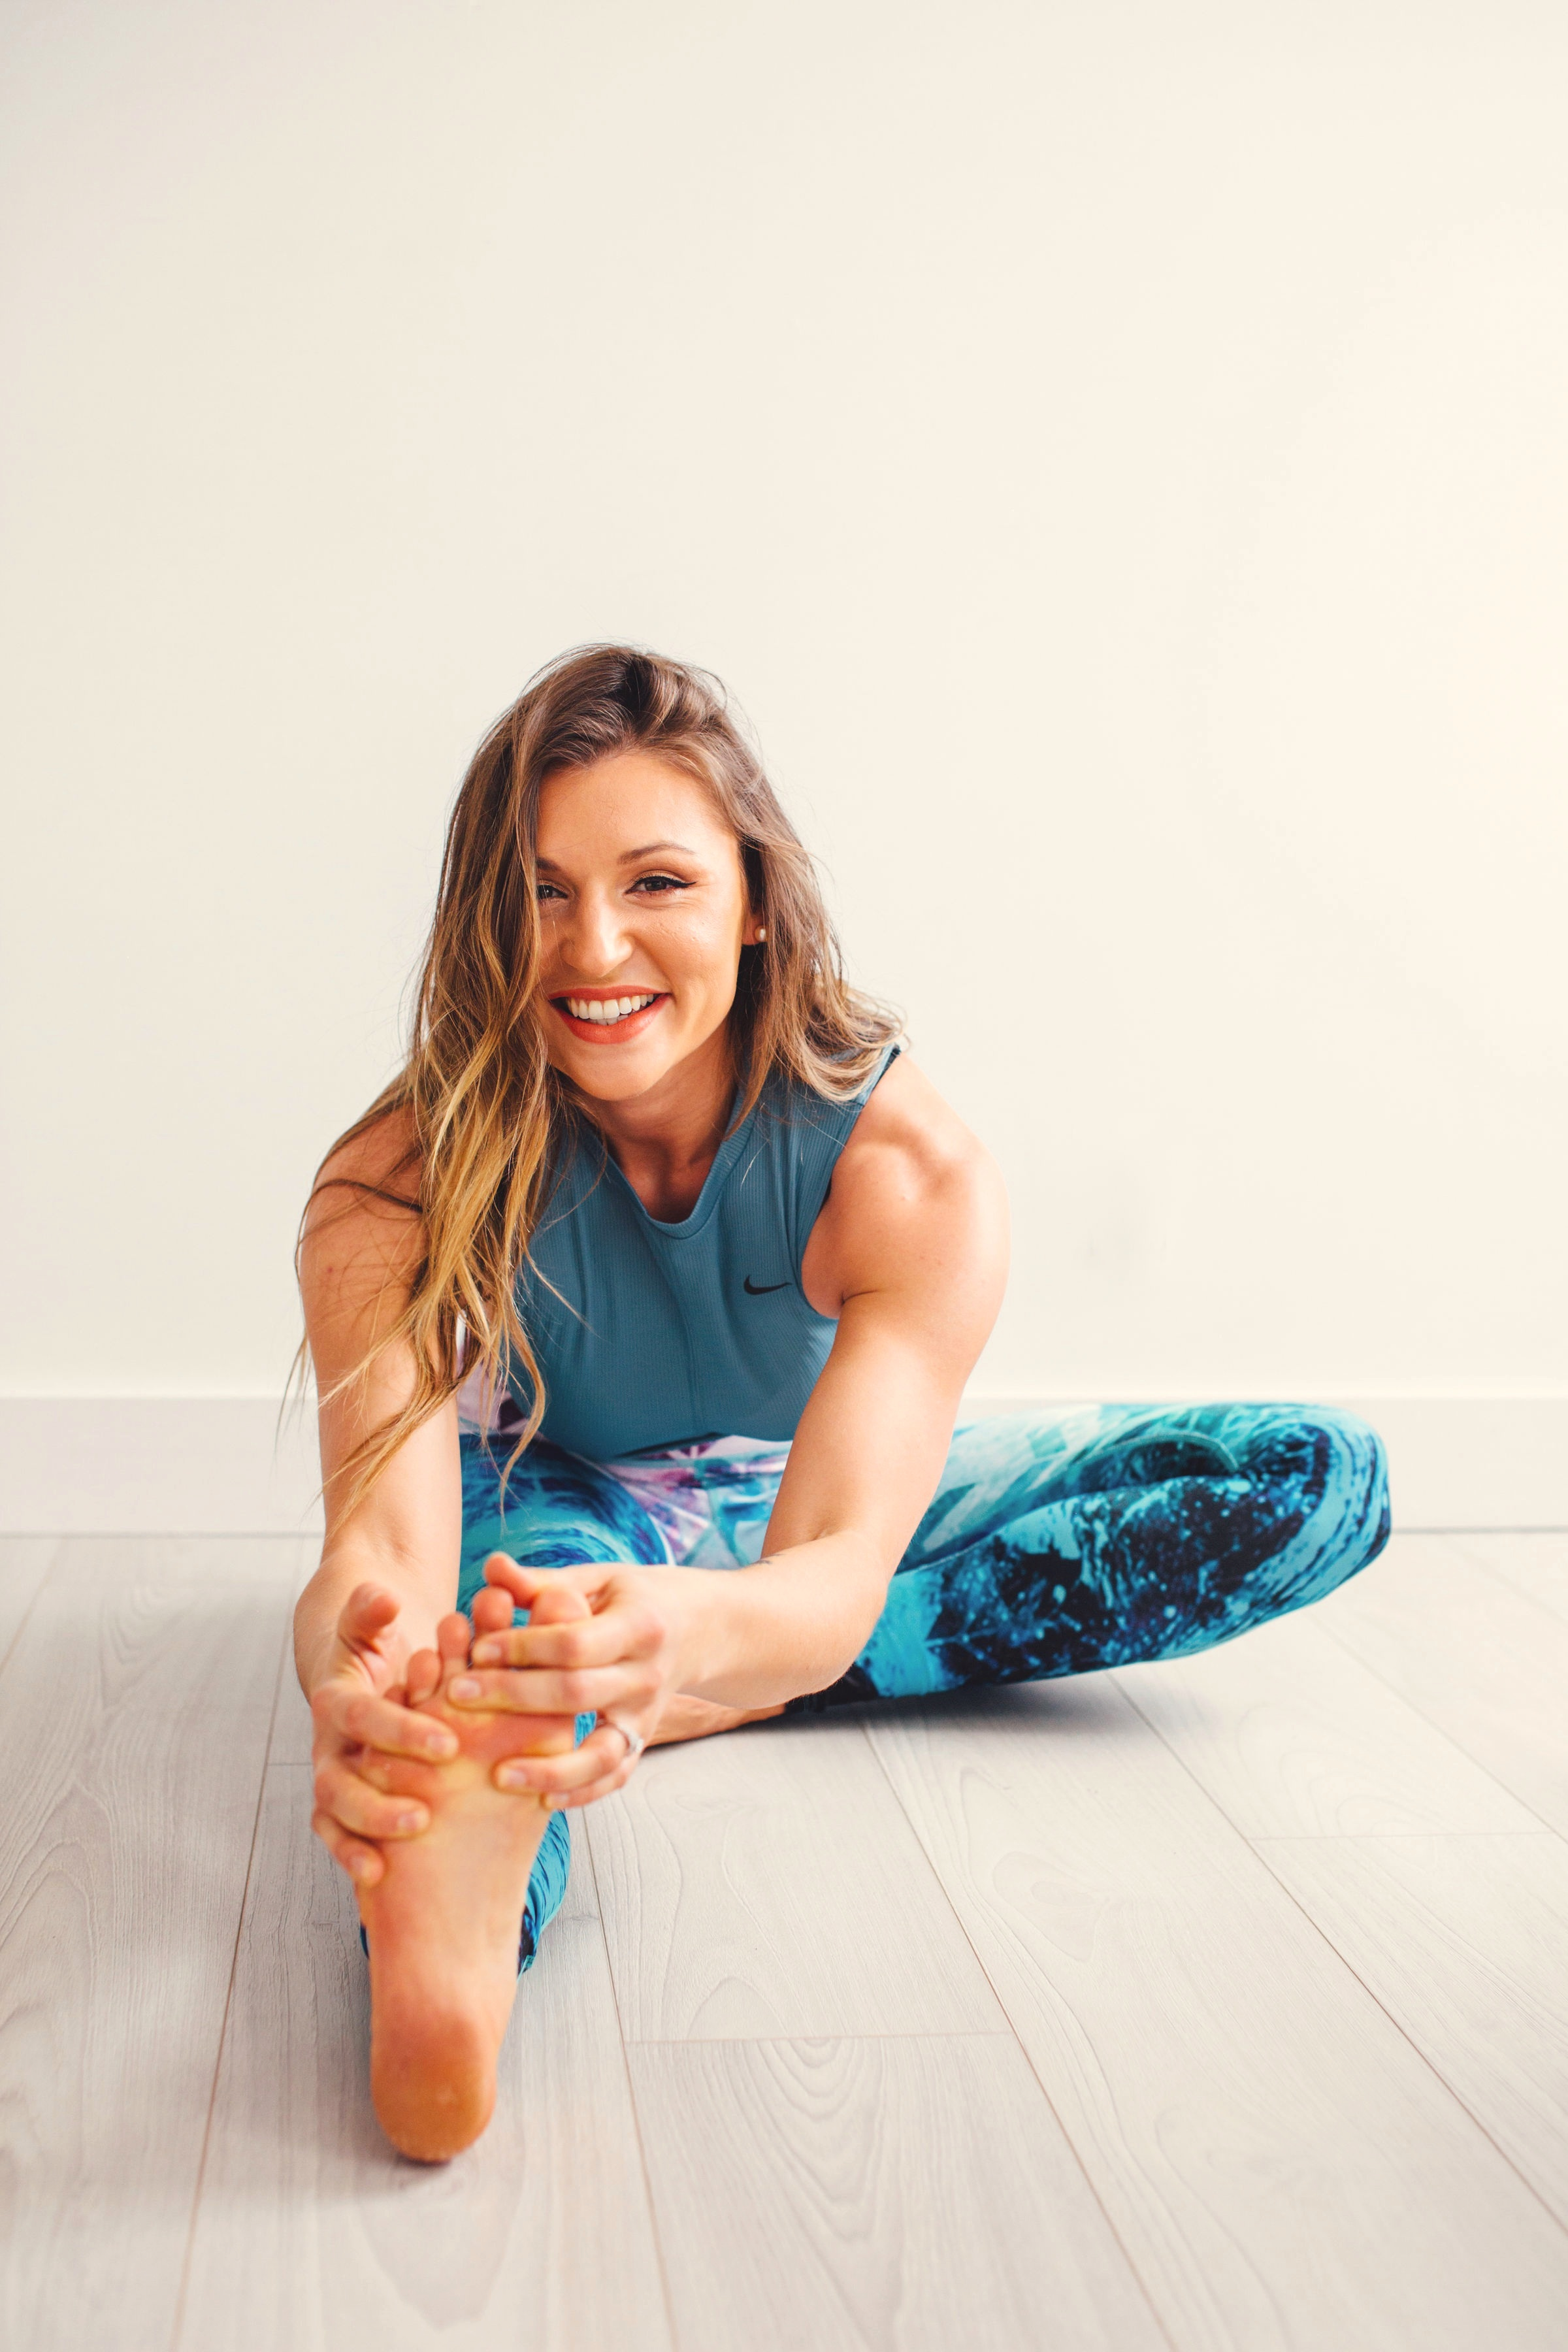 Hello! I'm Darcie. - I create tailored Fitness and Nutrition programs merging mind-body nutrition and real-life fitness into a daily routine. The reward? A Pathway of Presence that leads to an abundance of Happiness.